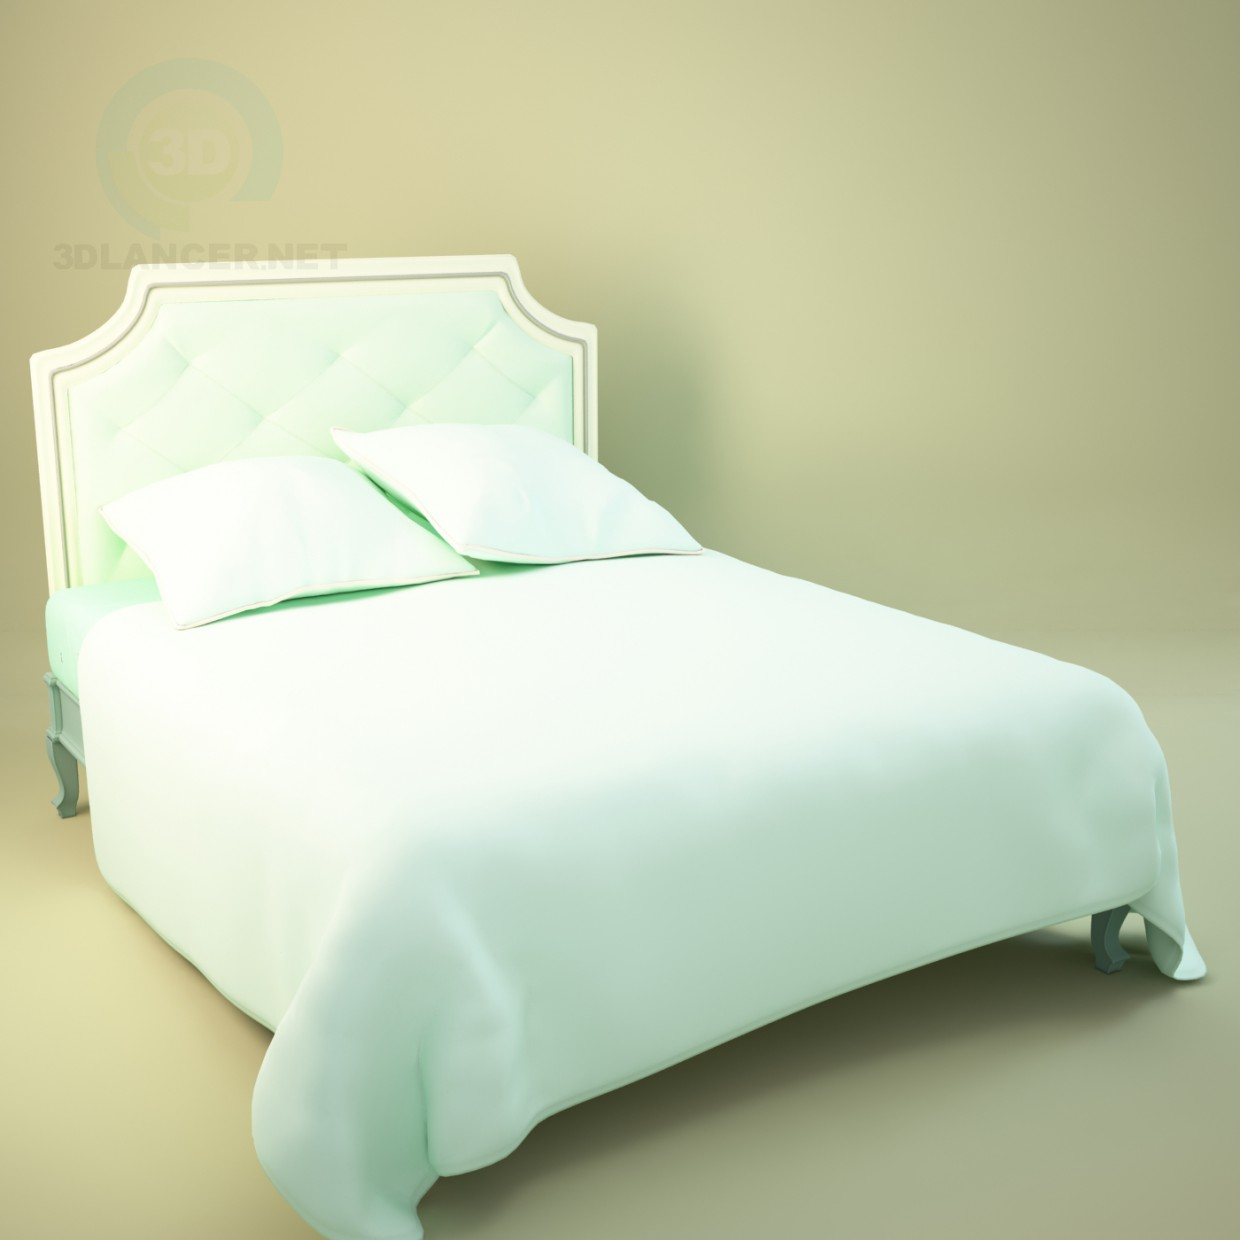 3d modeling classic bed model free download